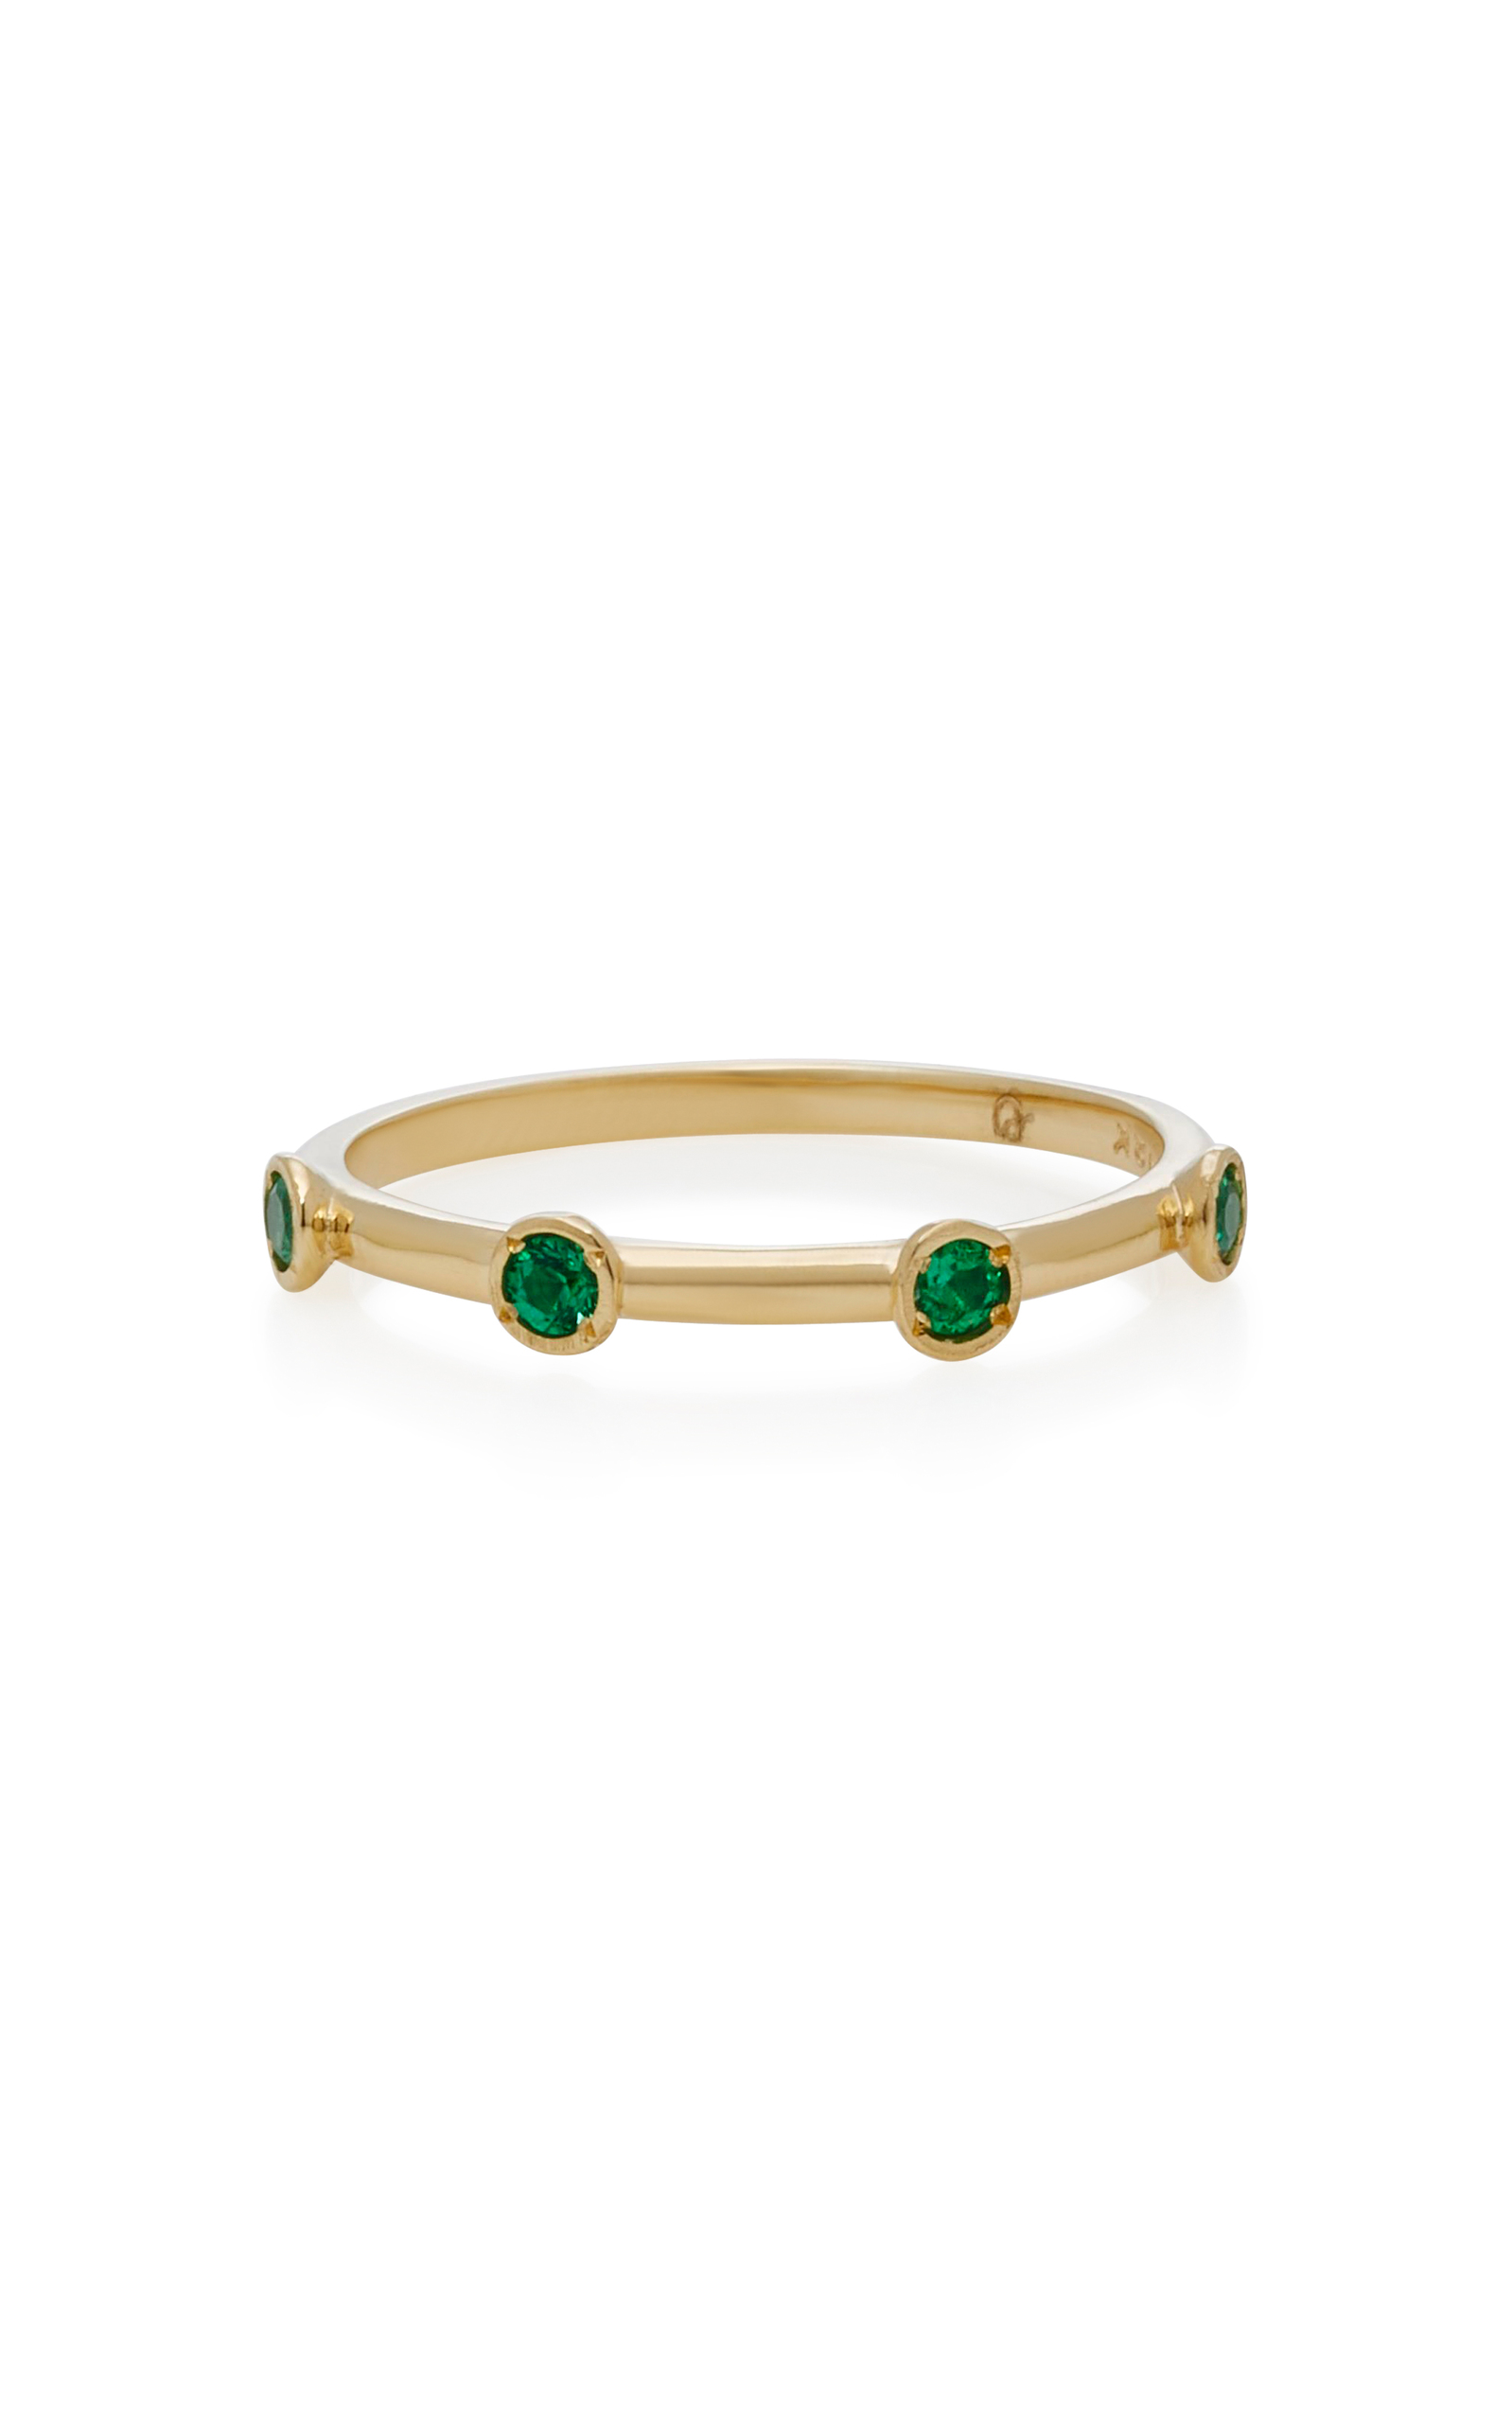 OCTAVIA ELIZABETH 18K GOLD EMERALD RING